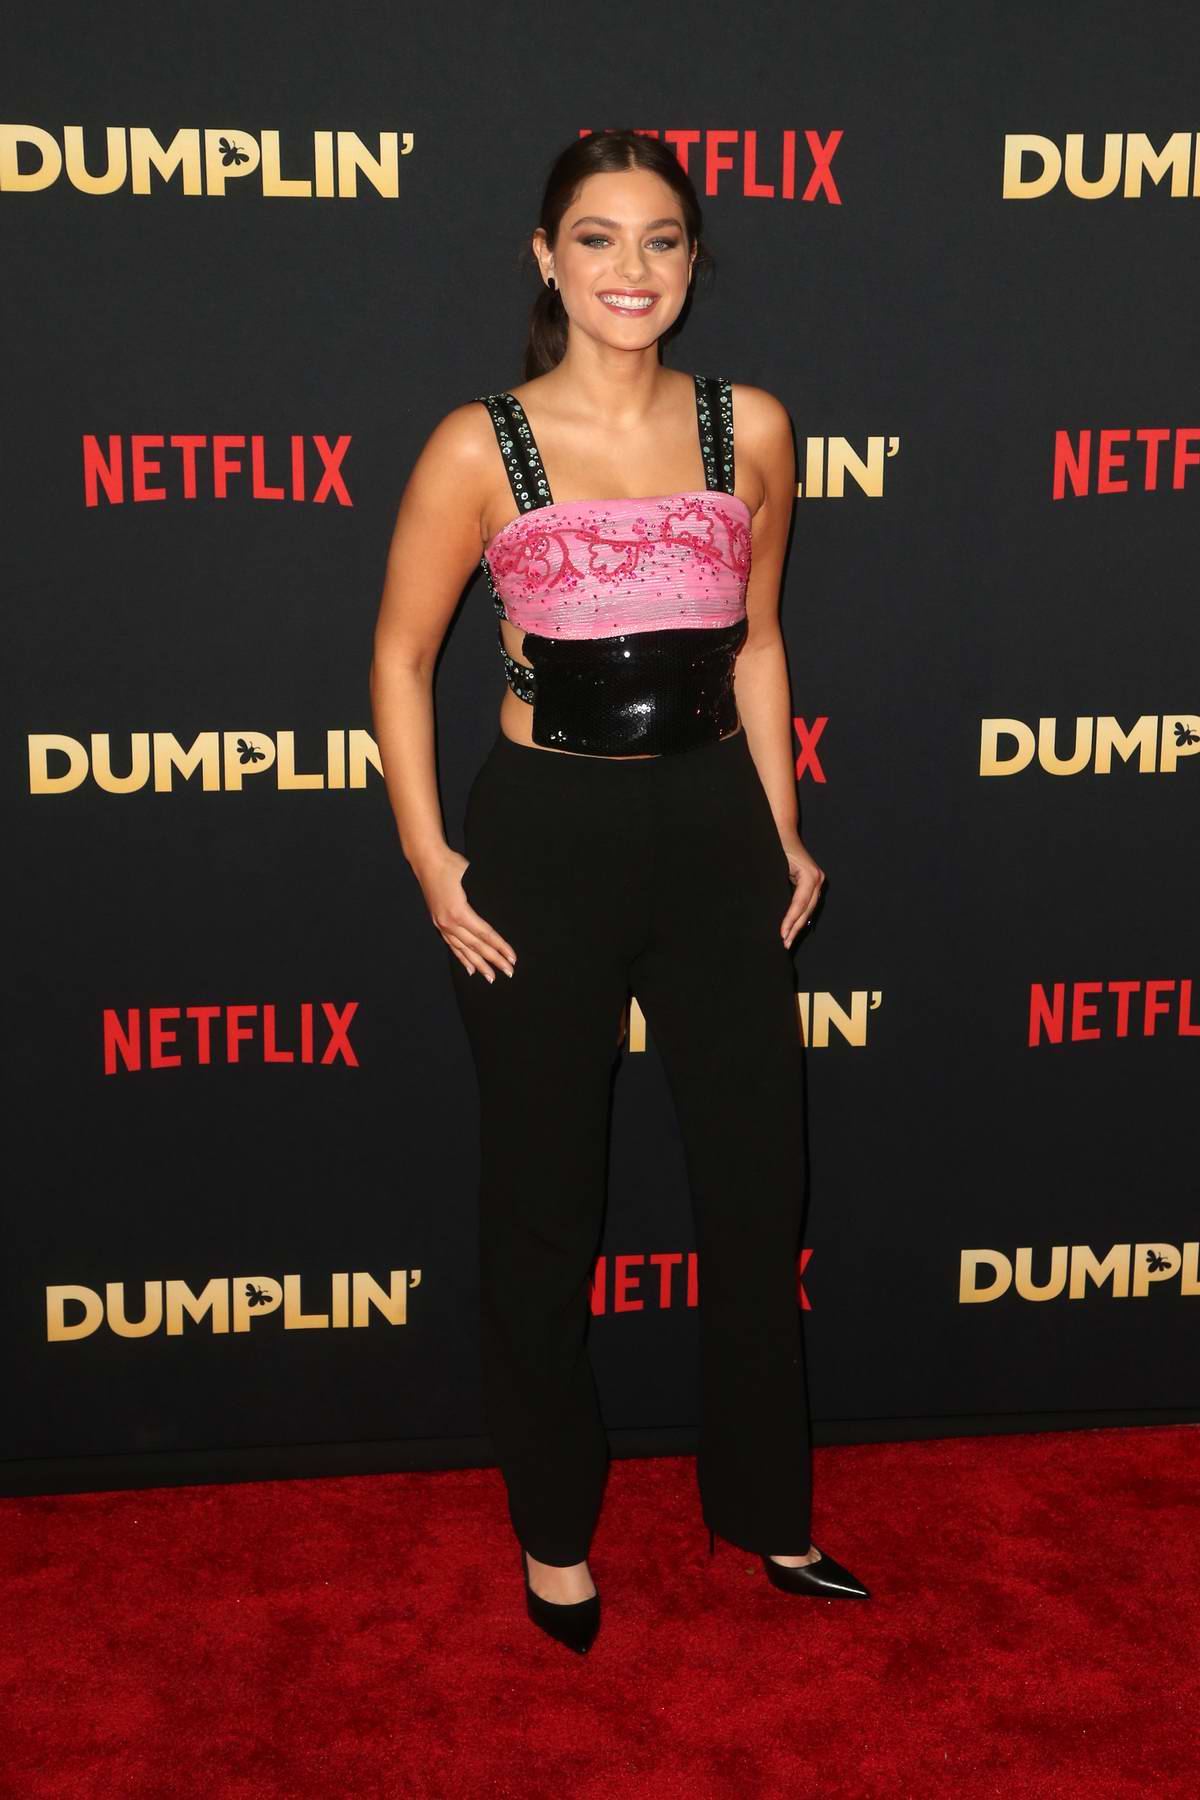 Odeya Rush attends the Premiere of Netflix's Dumplin' at TCL Chinese Theatre in Hollywood, California